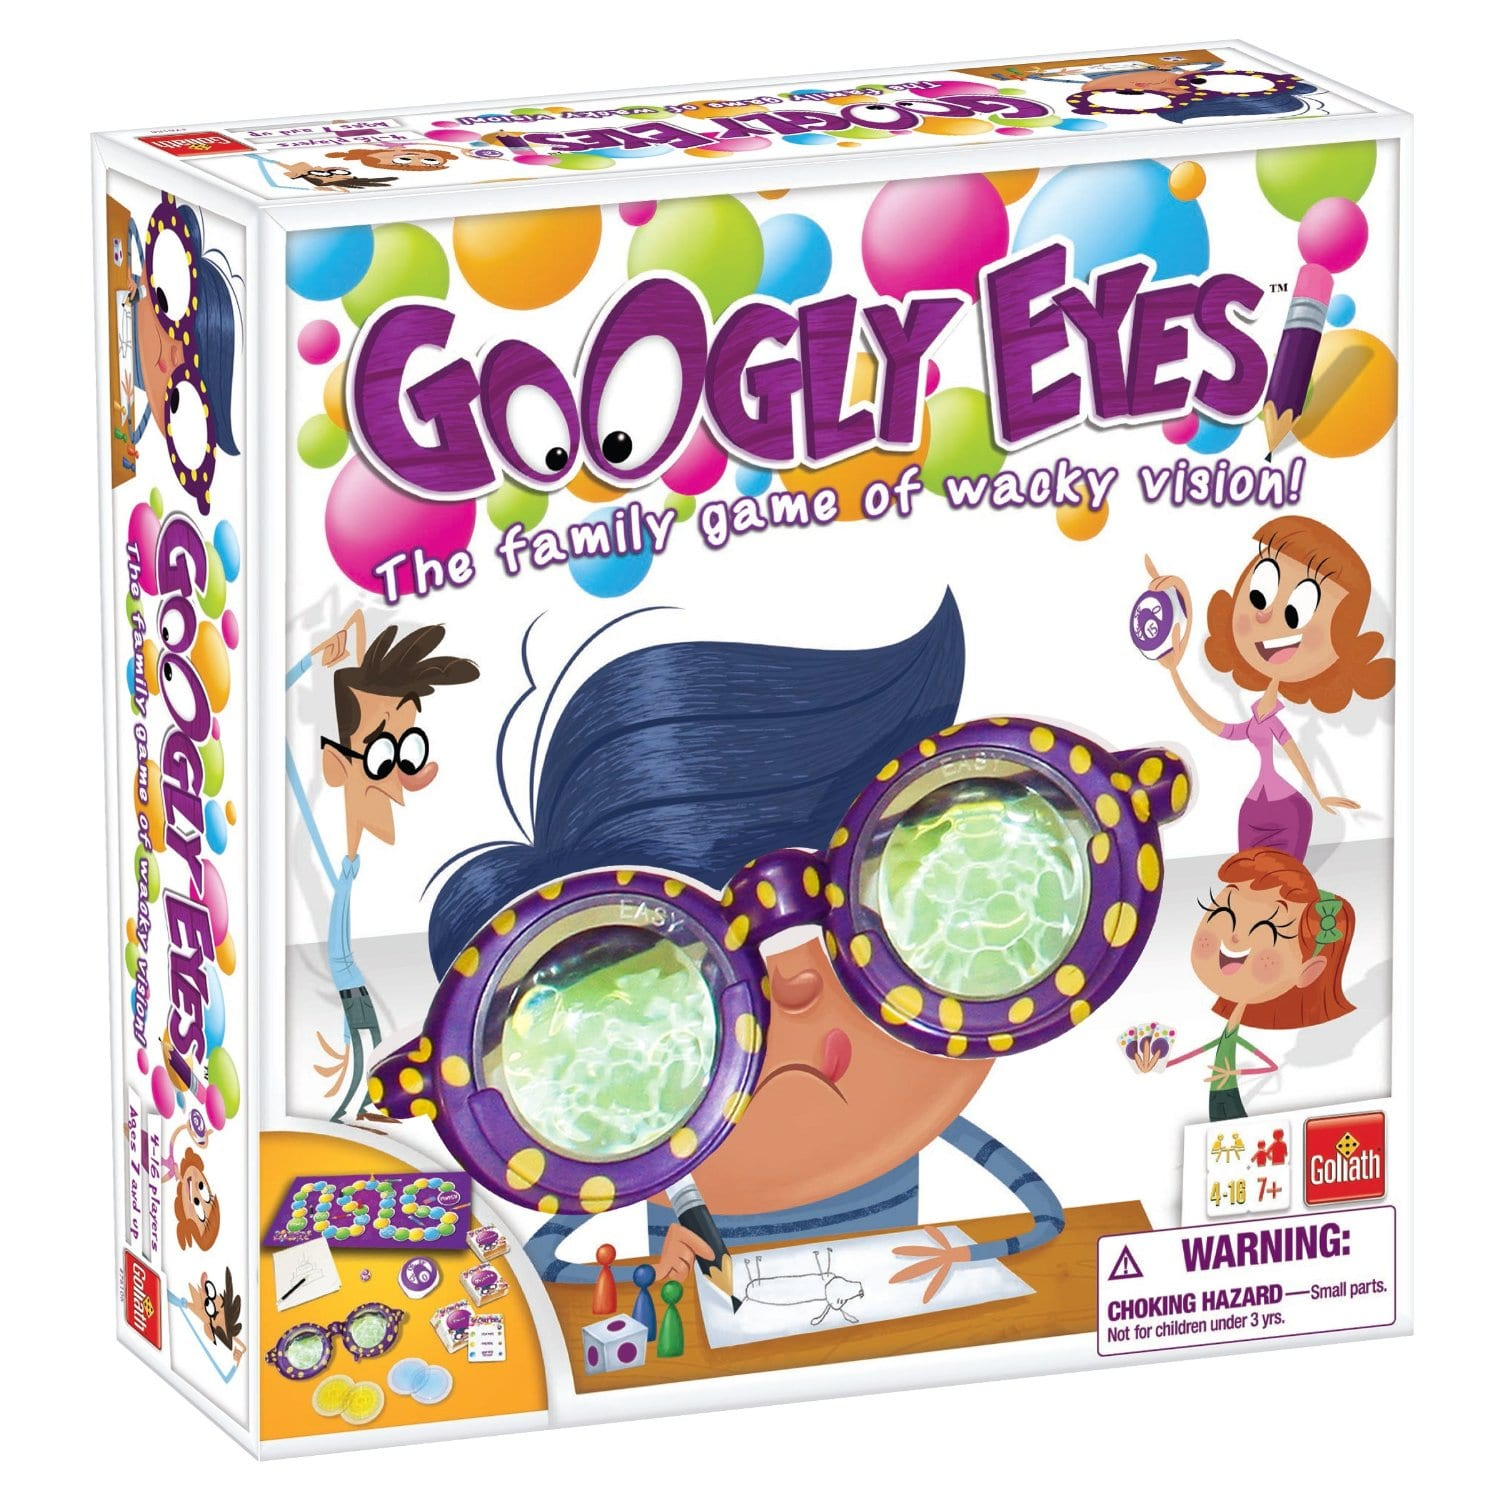 Googly Eyes Drawing Game 2016 - 2017 Toy Gift Ideas